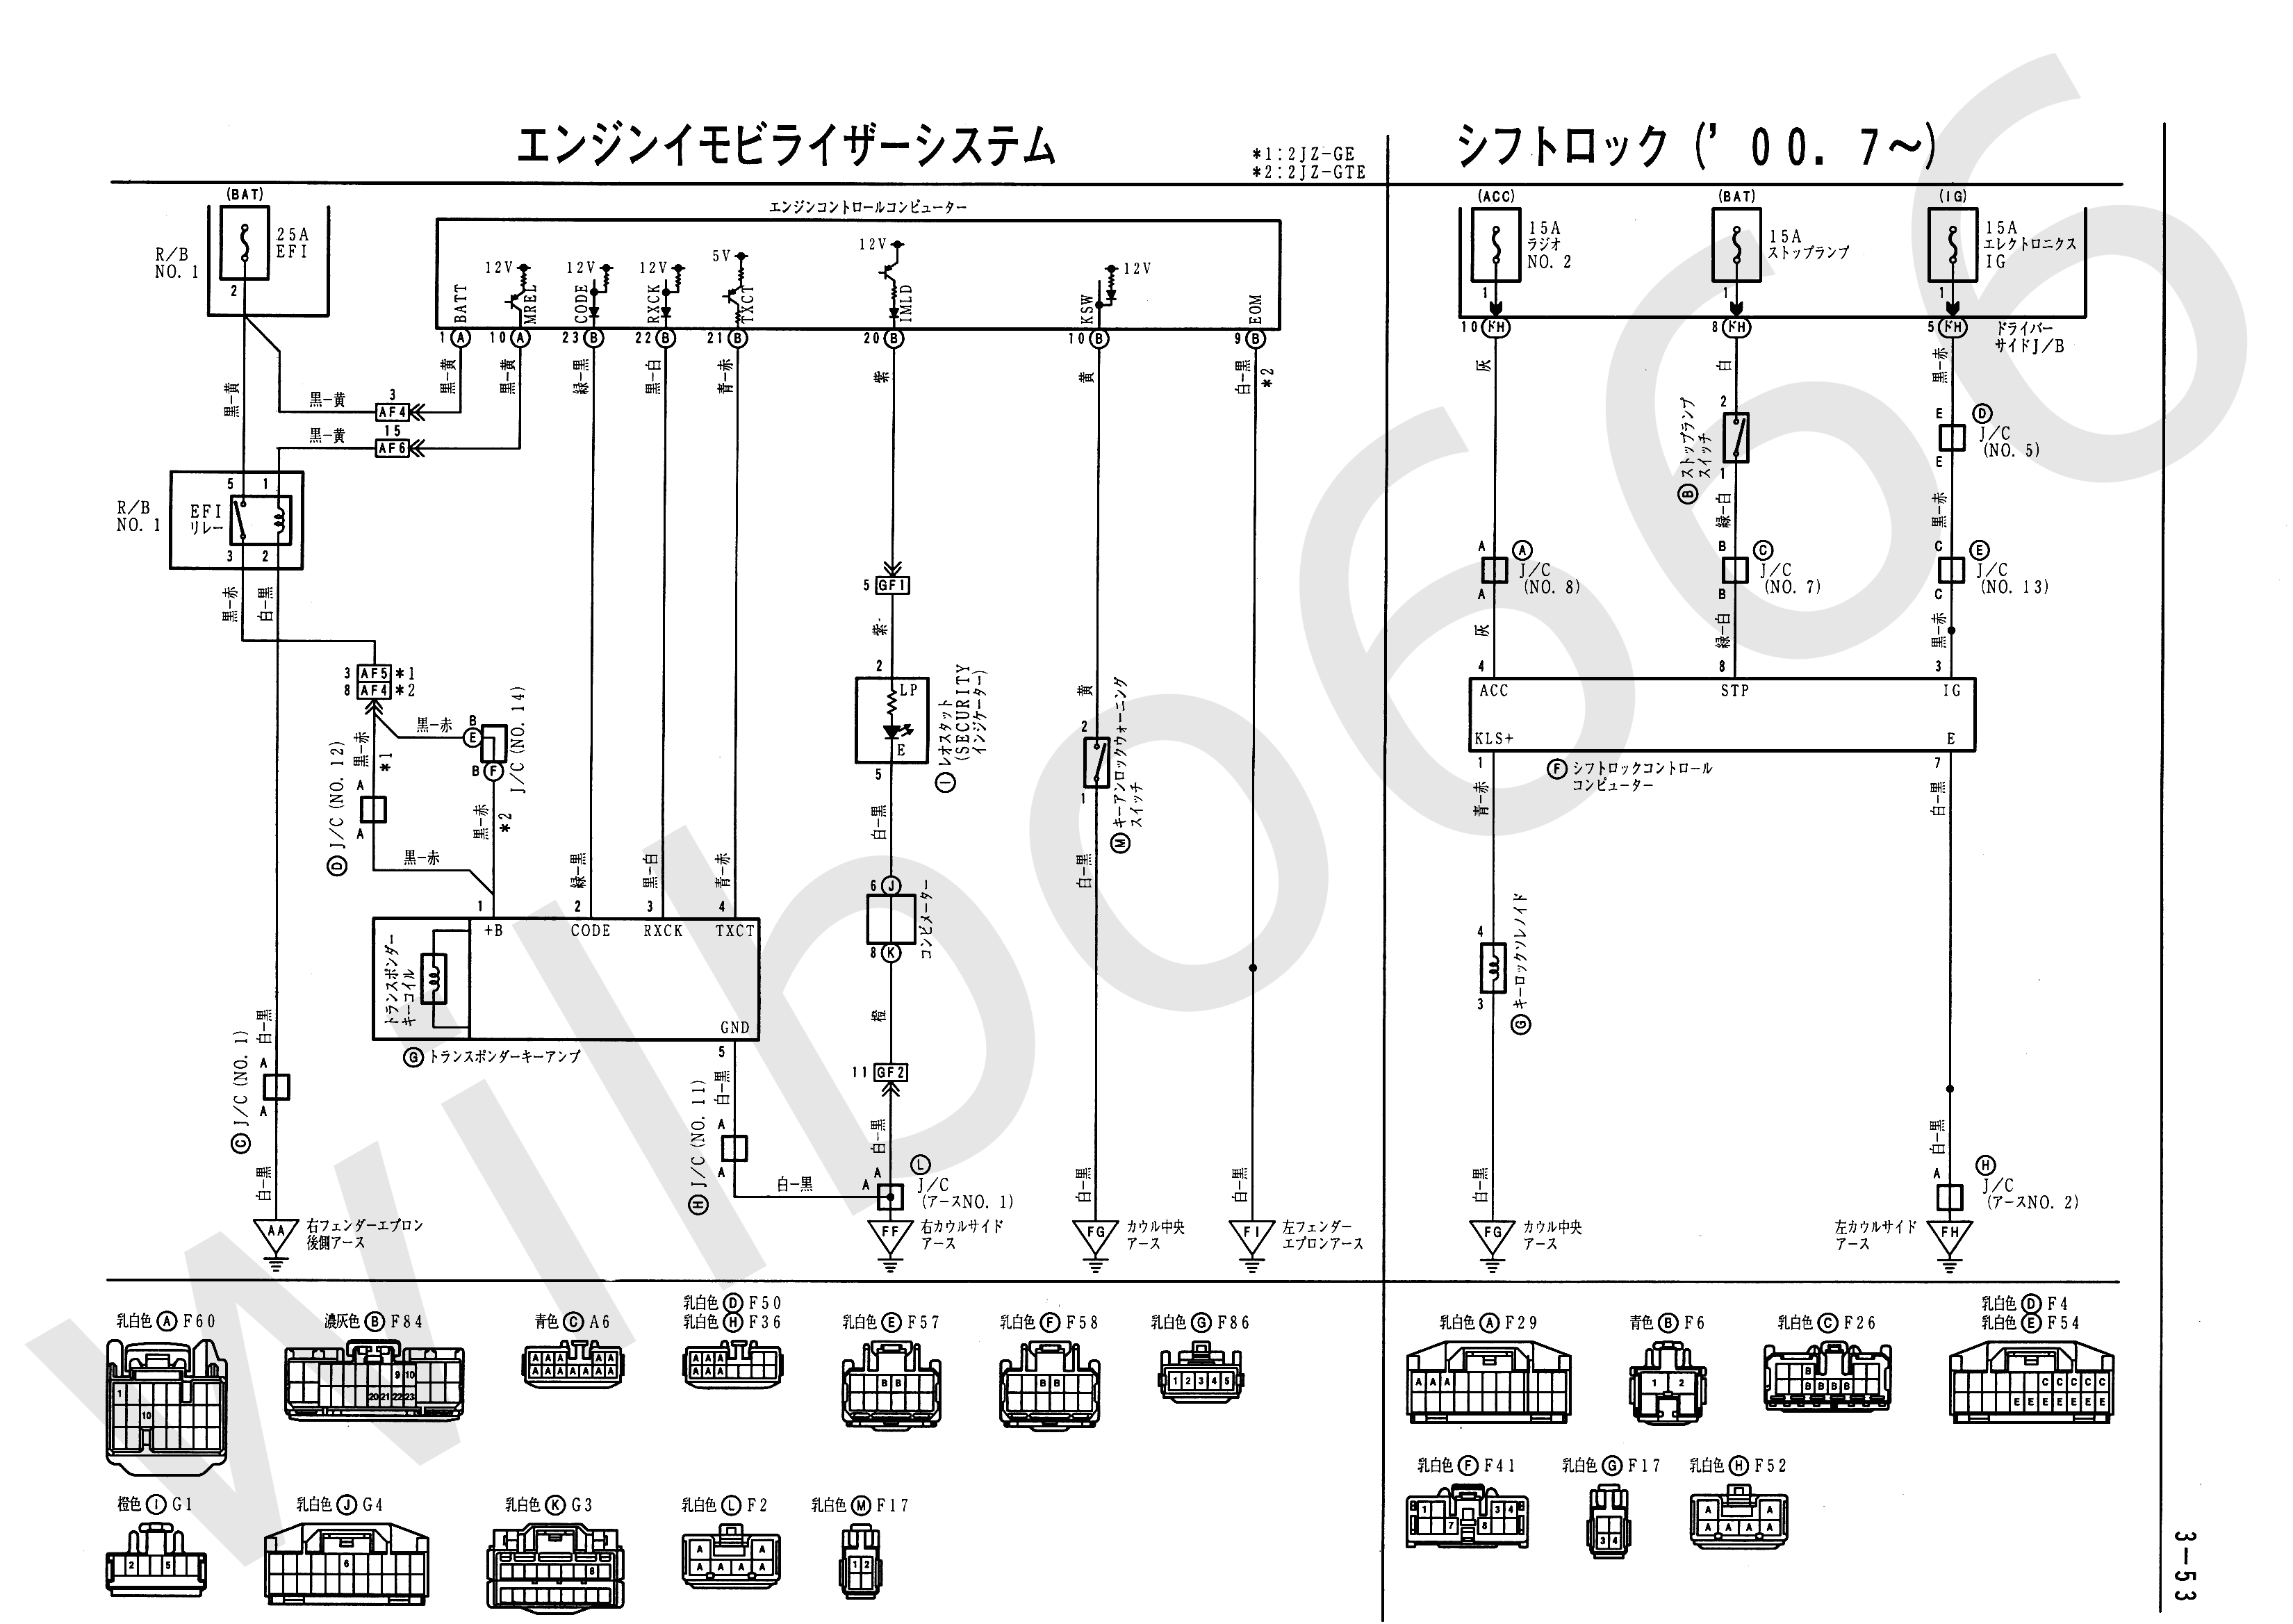 JZS161 Electrical Wiring Diagram 6748505 3 53 wilbo666 2jz gte vvti jzs161 aristo engine wiring  at eliteediting.co